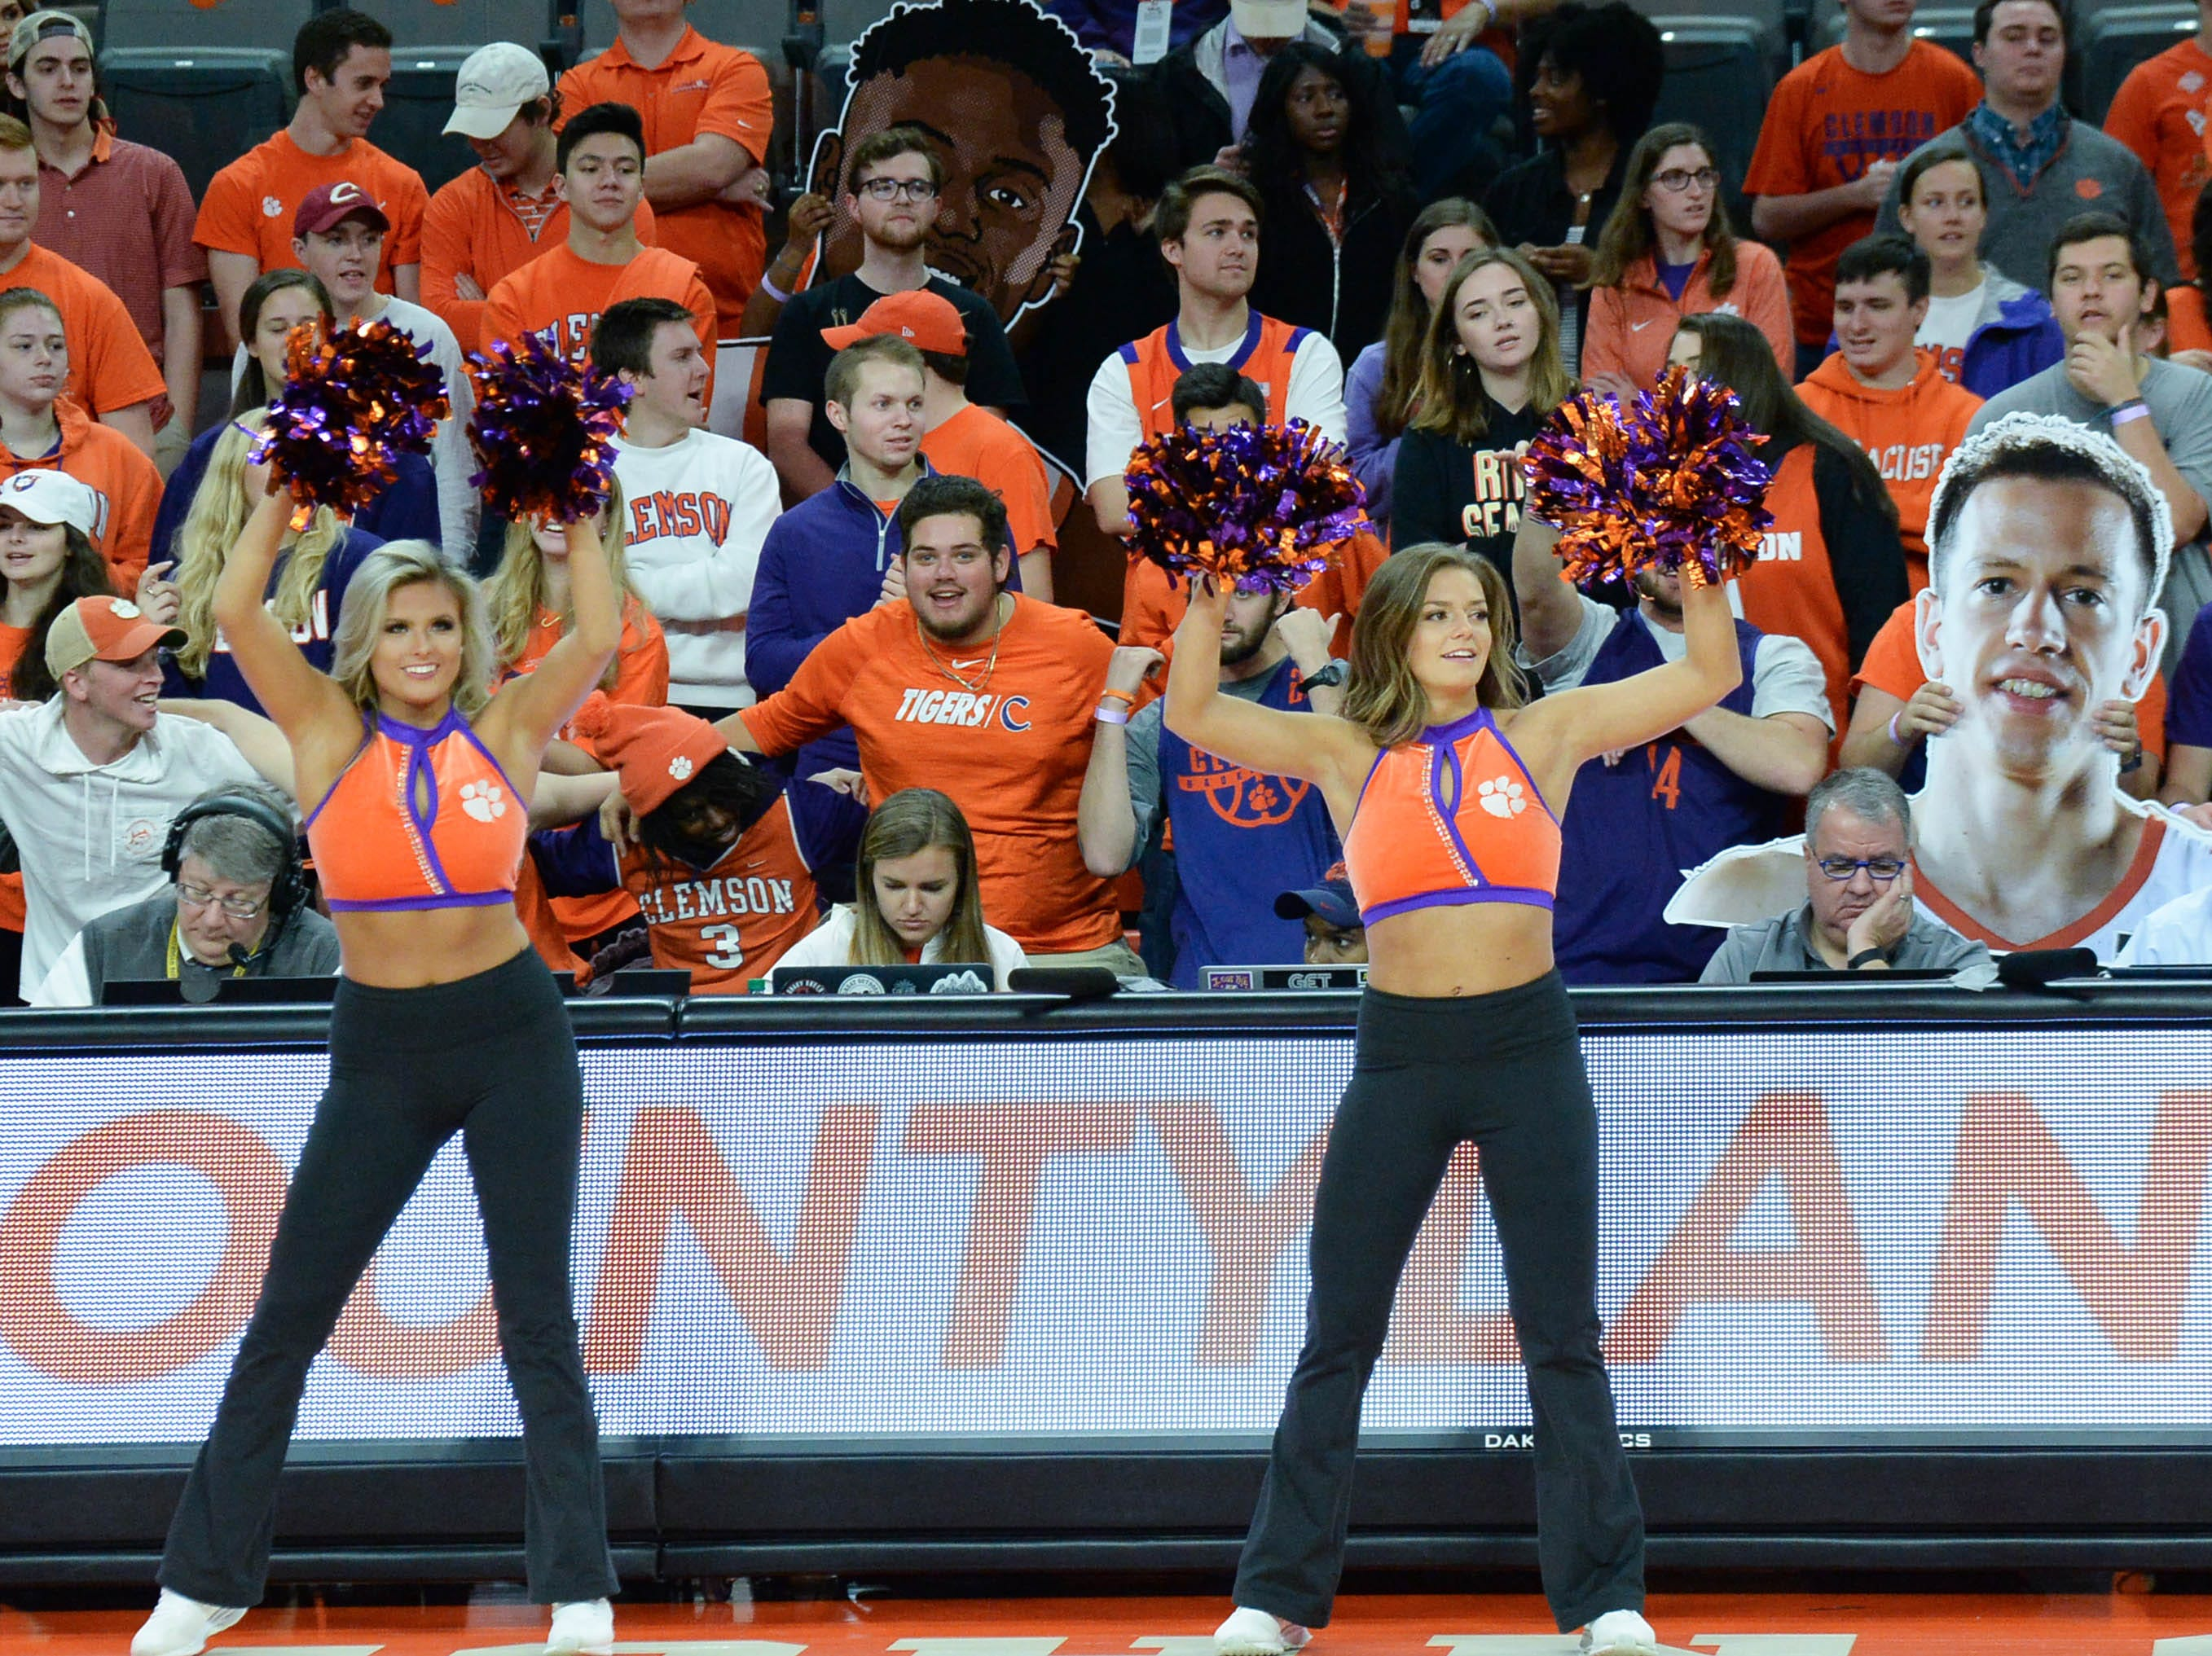 Clemson Rally Cats dance near fans before the game against Syracuse Saturday, March 9, 2019.